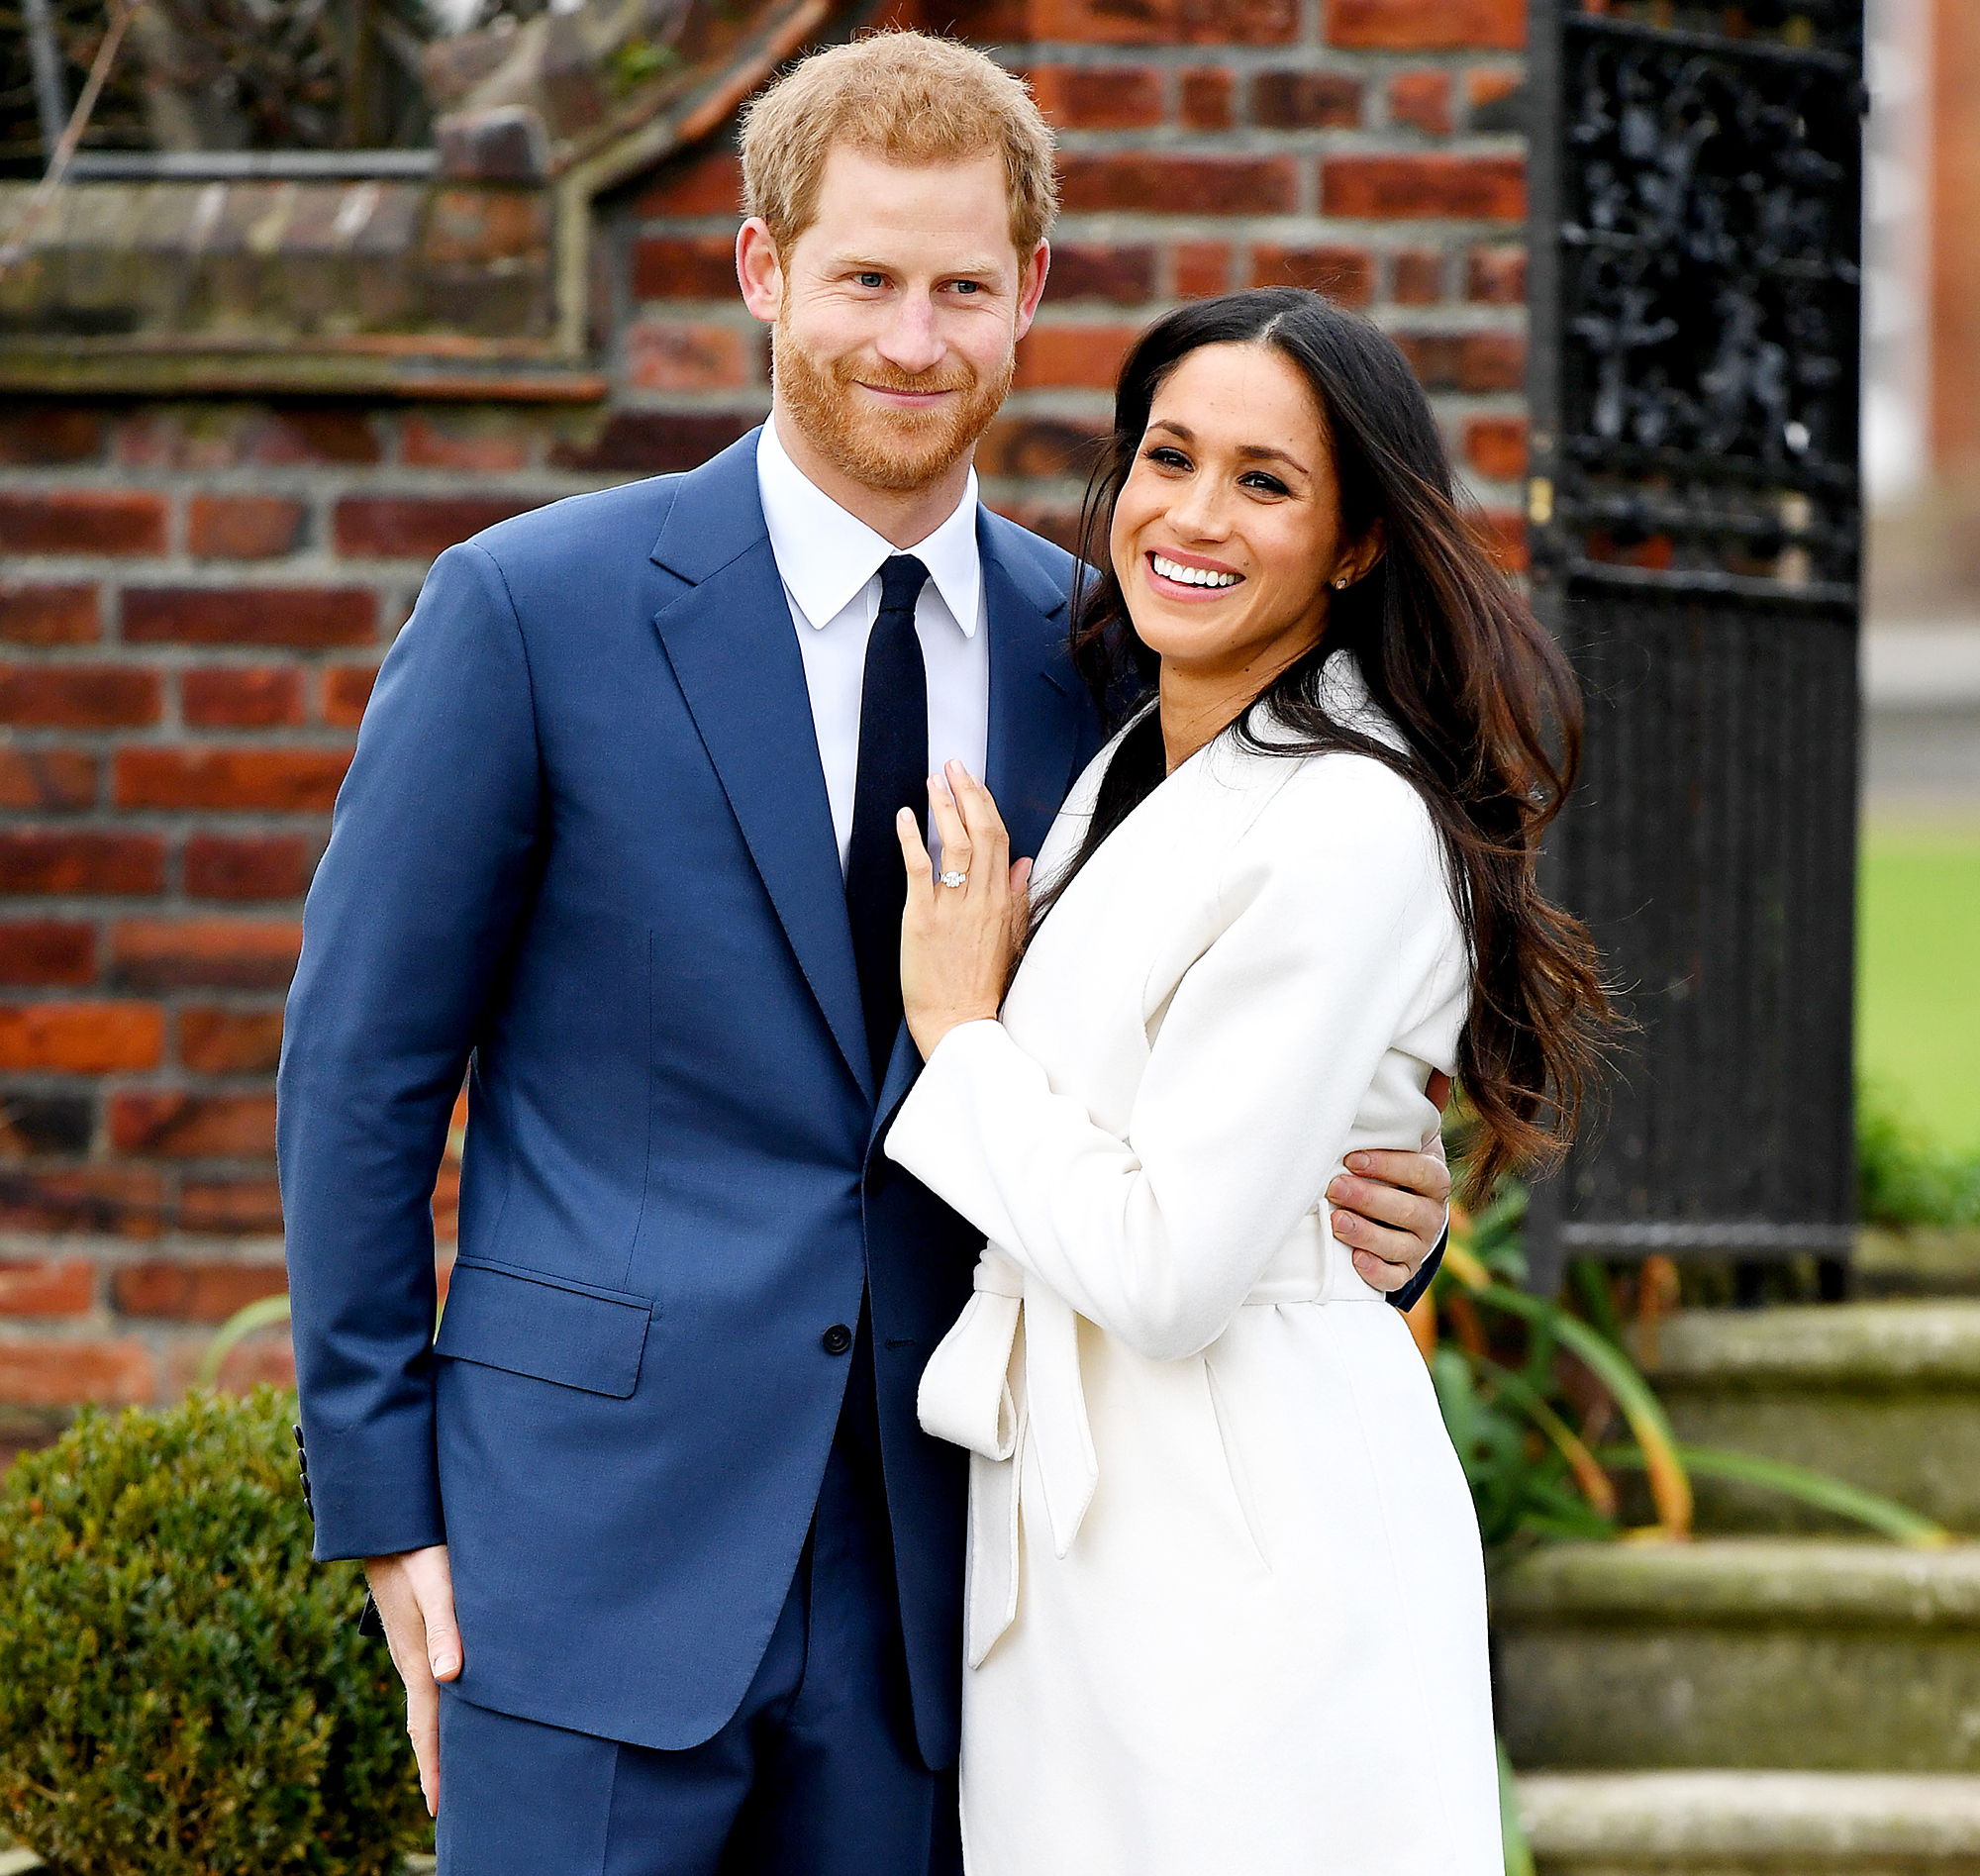 President Trump Will Give Harry, Meghan A Wedding Gift